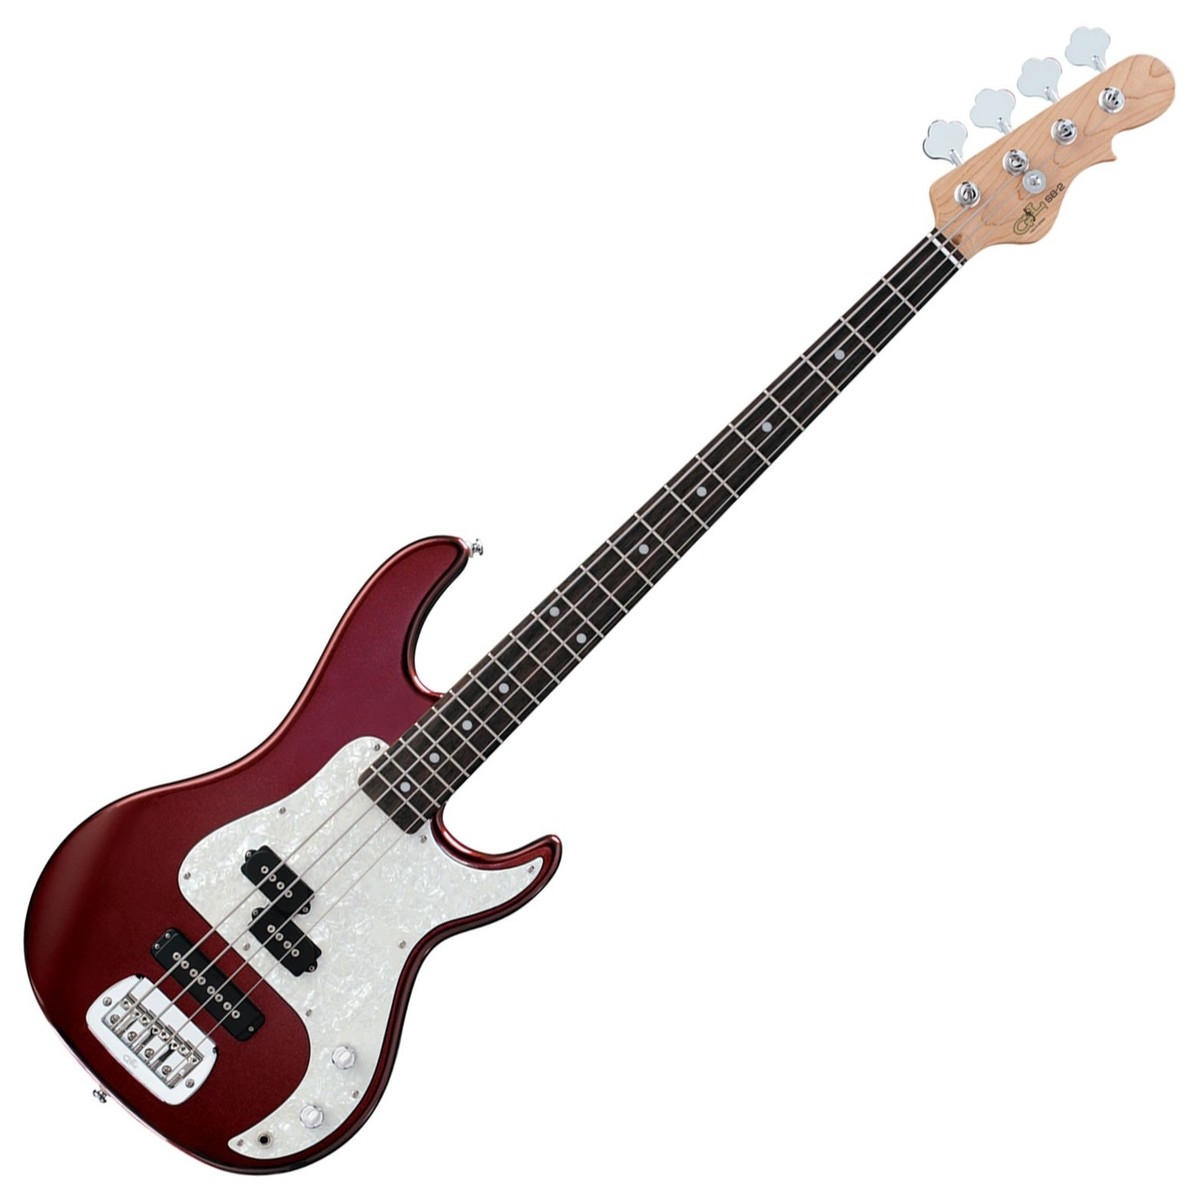 g l sb 2 electric bass bordeaux red at gear4music. Black Bedroom Furniture Sets. Home Design Ideas